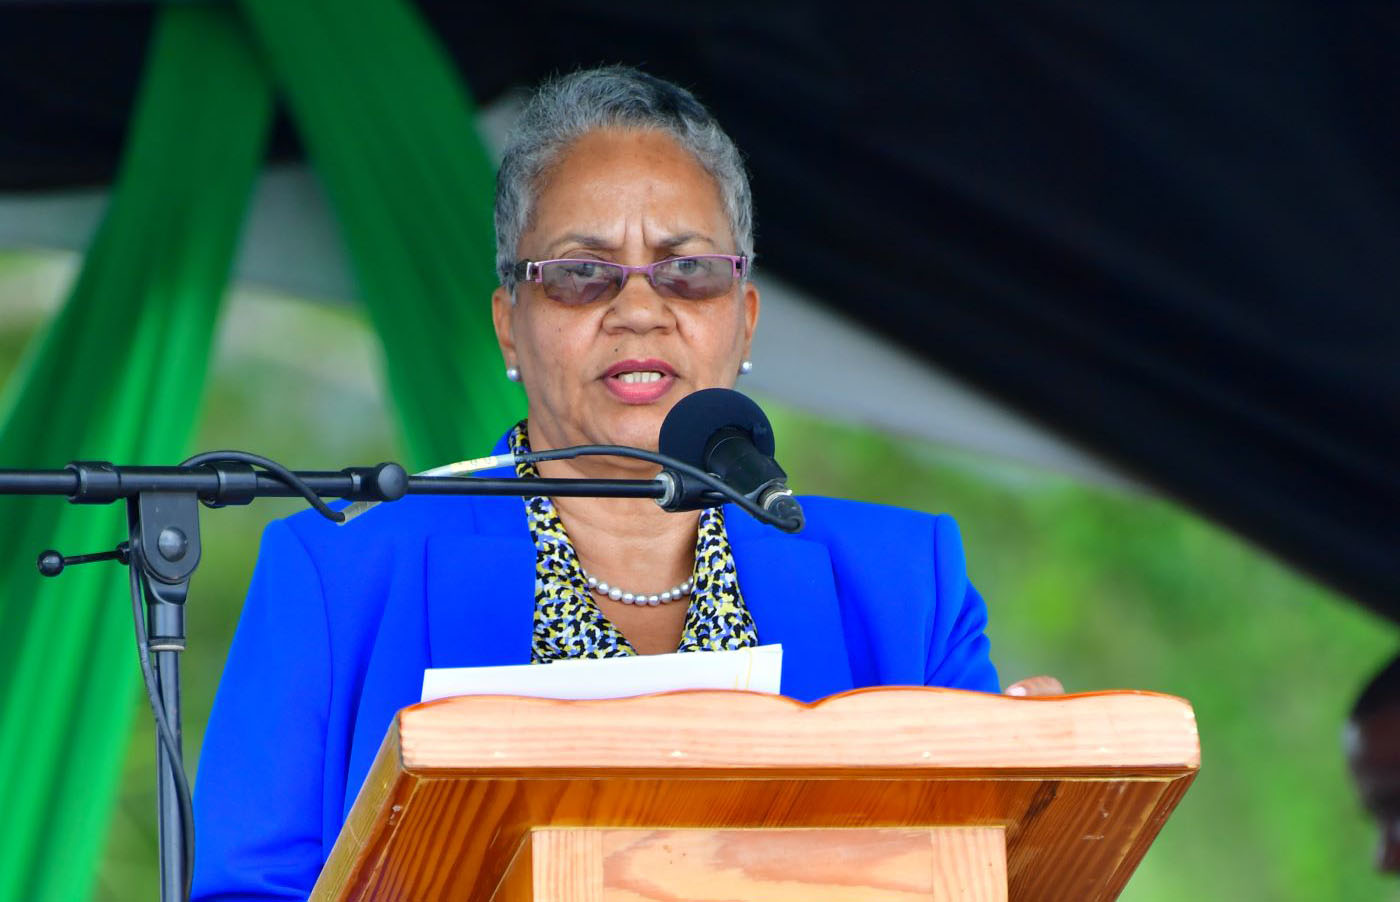 CDB Vice President Monica La Bennett speaking at the launch of the St. Vincent Geothermal Project